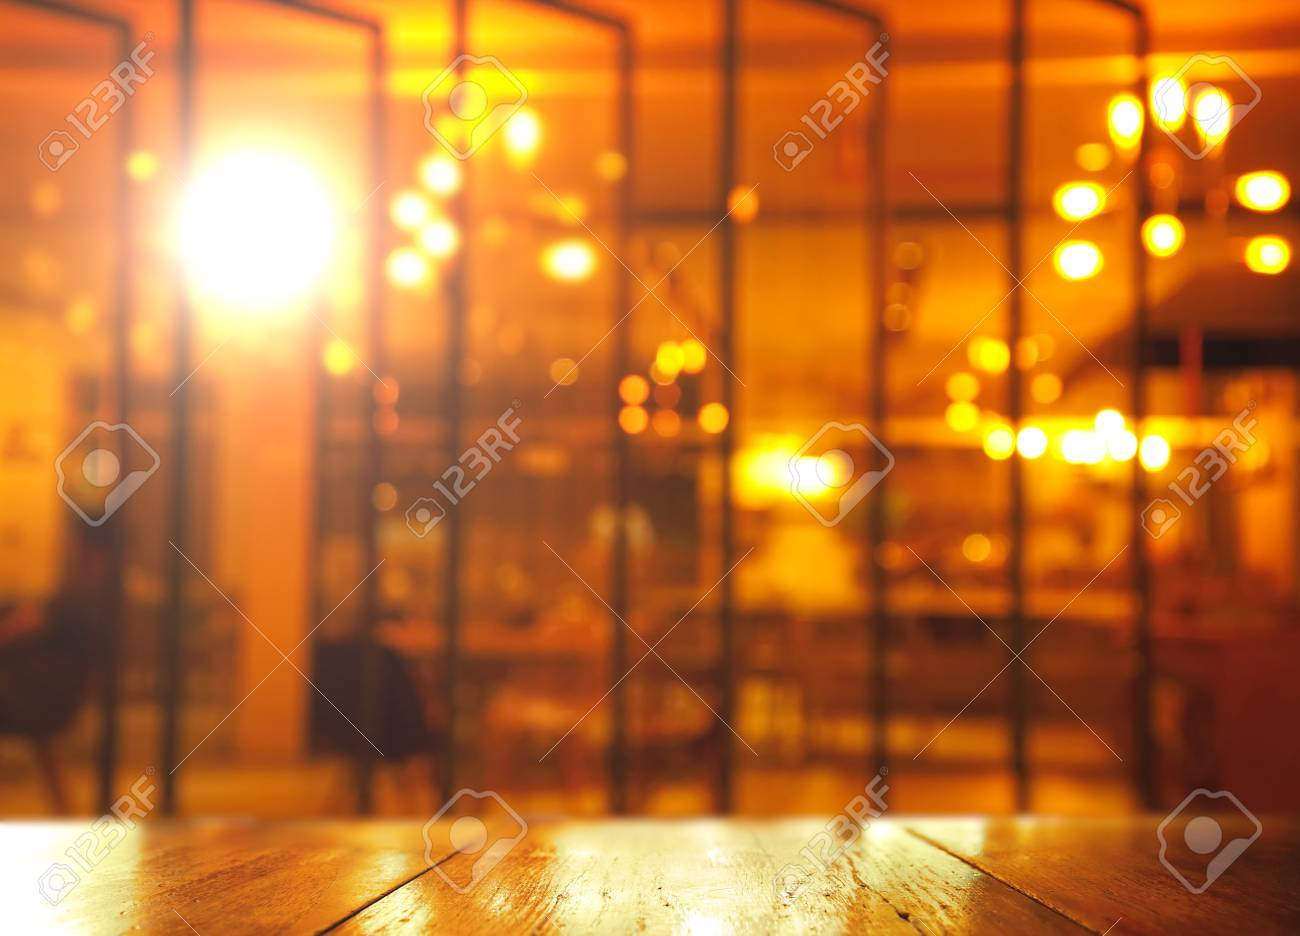 Top Of Wood With Lamp Light In Bar At Night Background Stock Photo Picture And Royalty Free Image Image 78075518